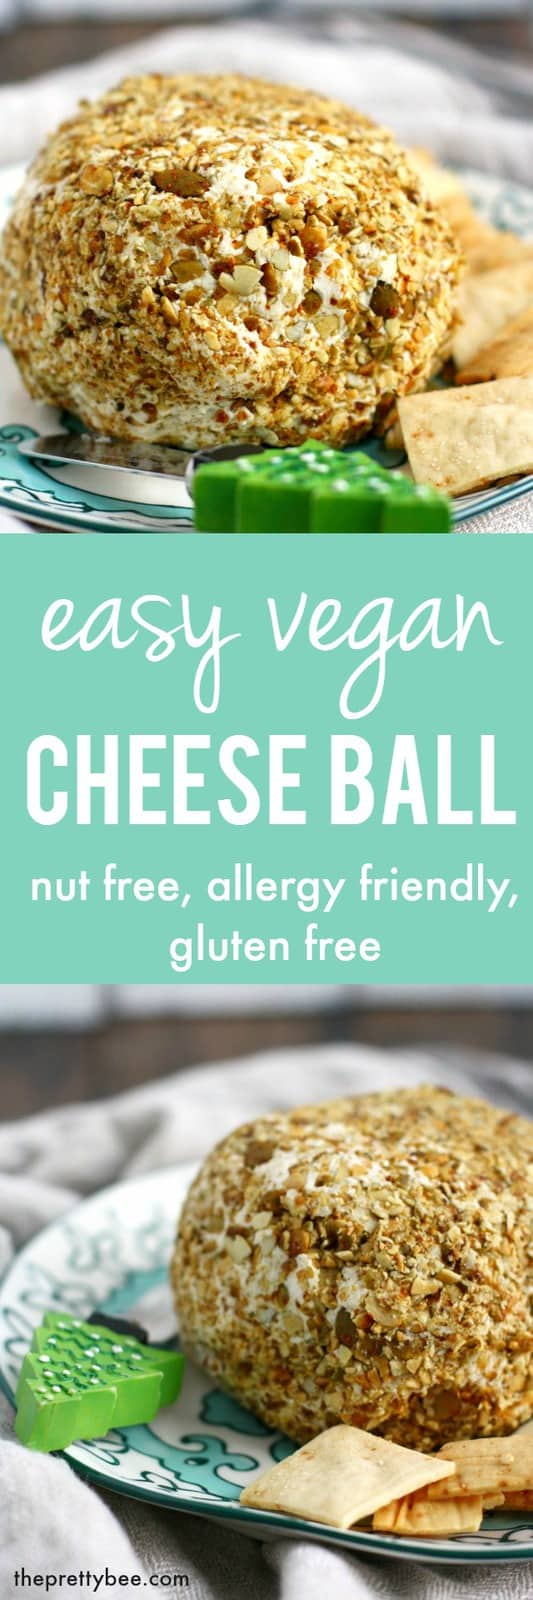 A creamy, flavorful vegan cheese ball is the perfect party appetizer! #nutfree #dairyfree #glutenfree